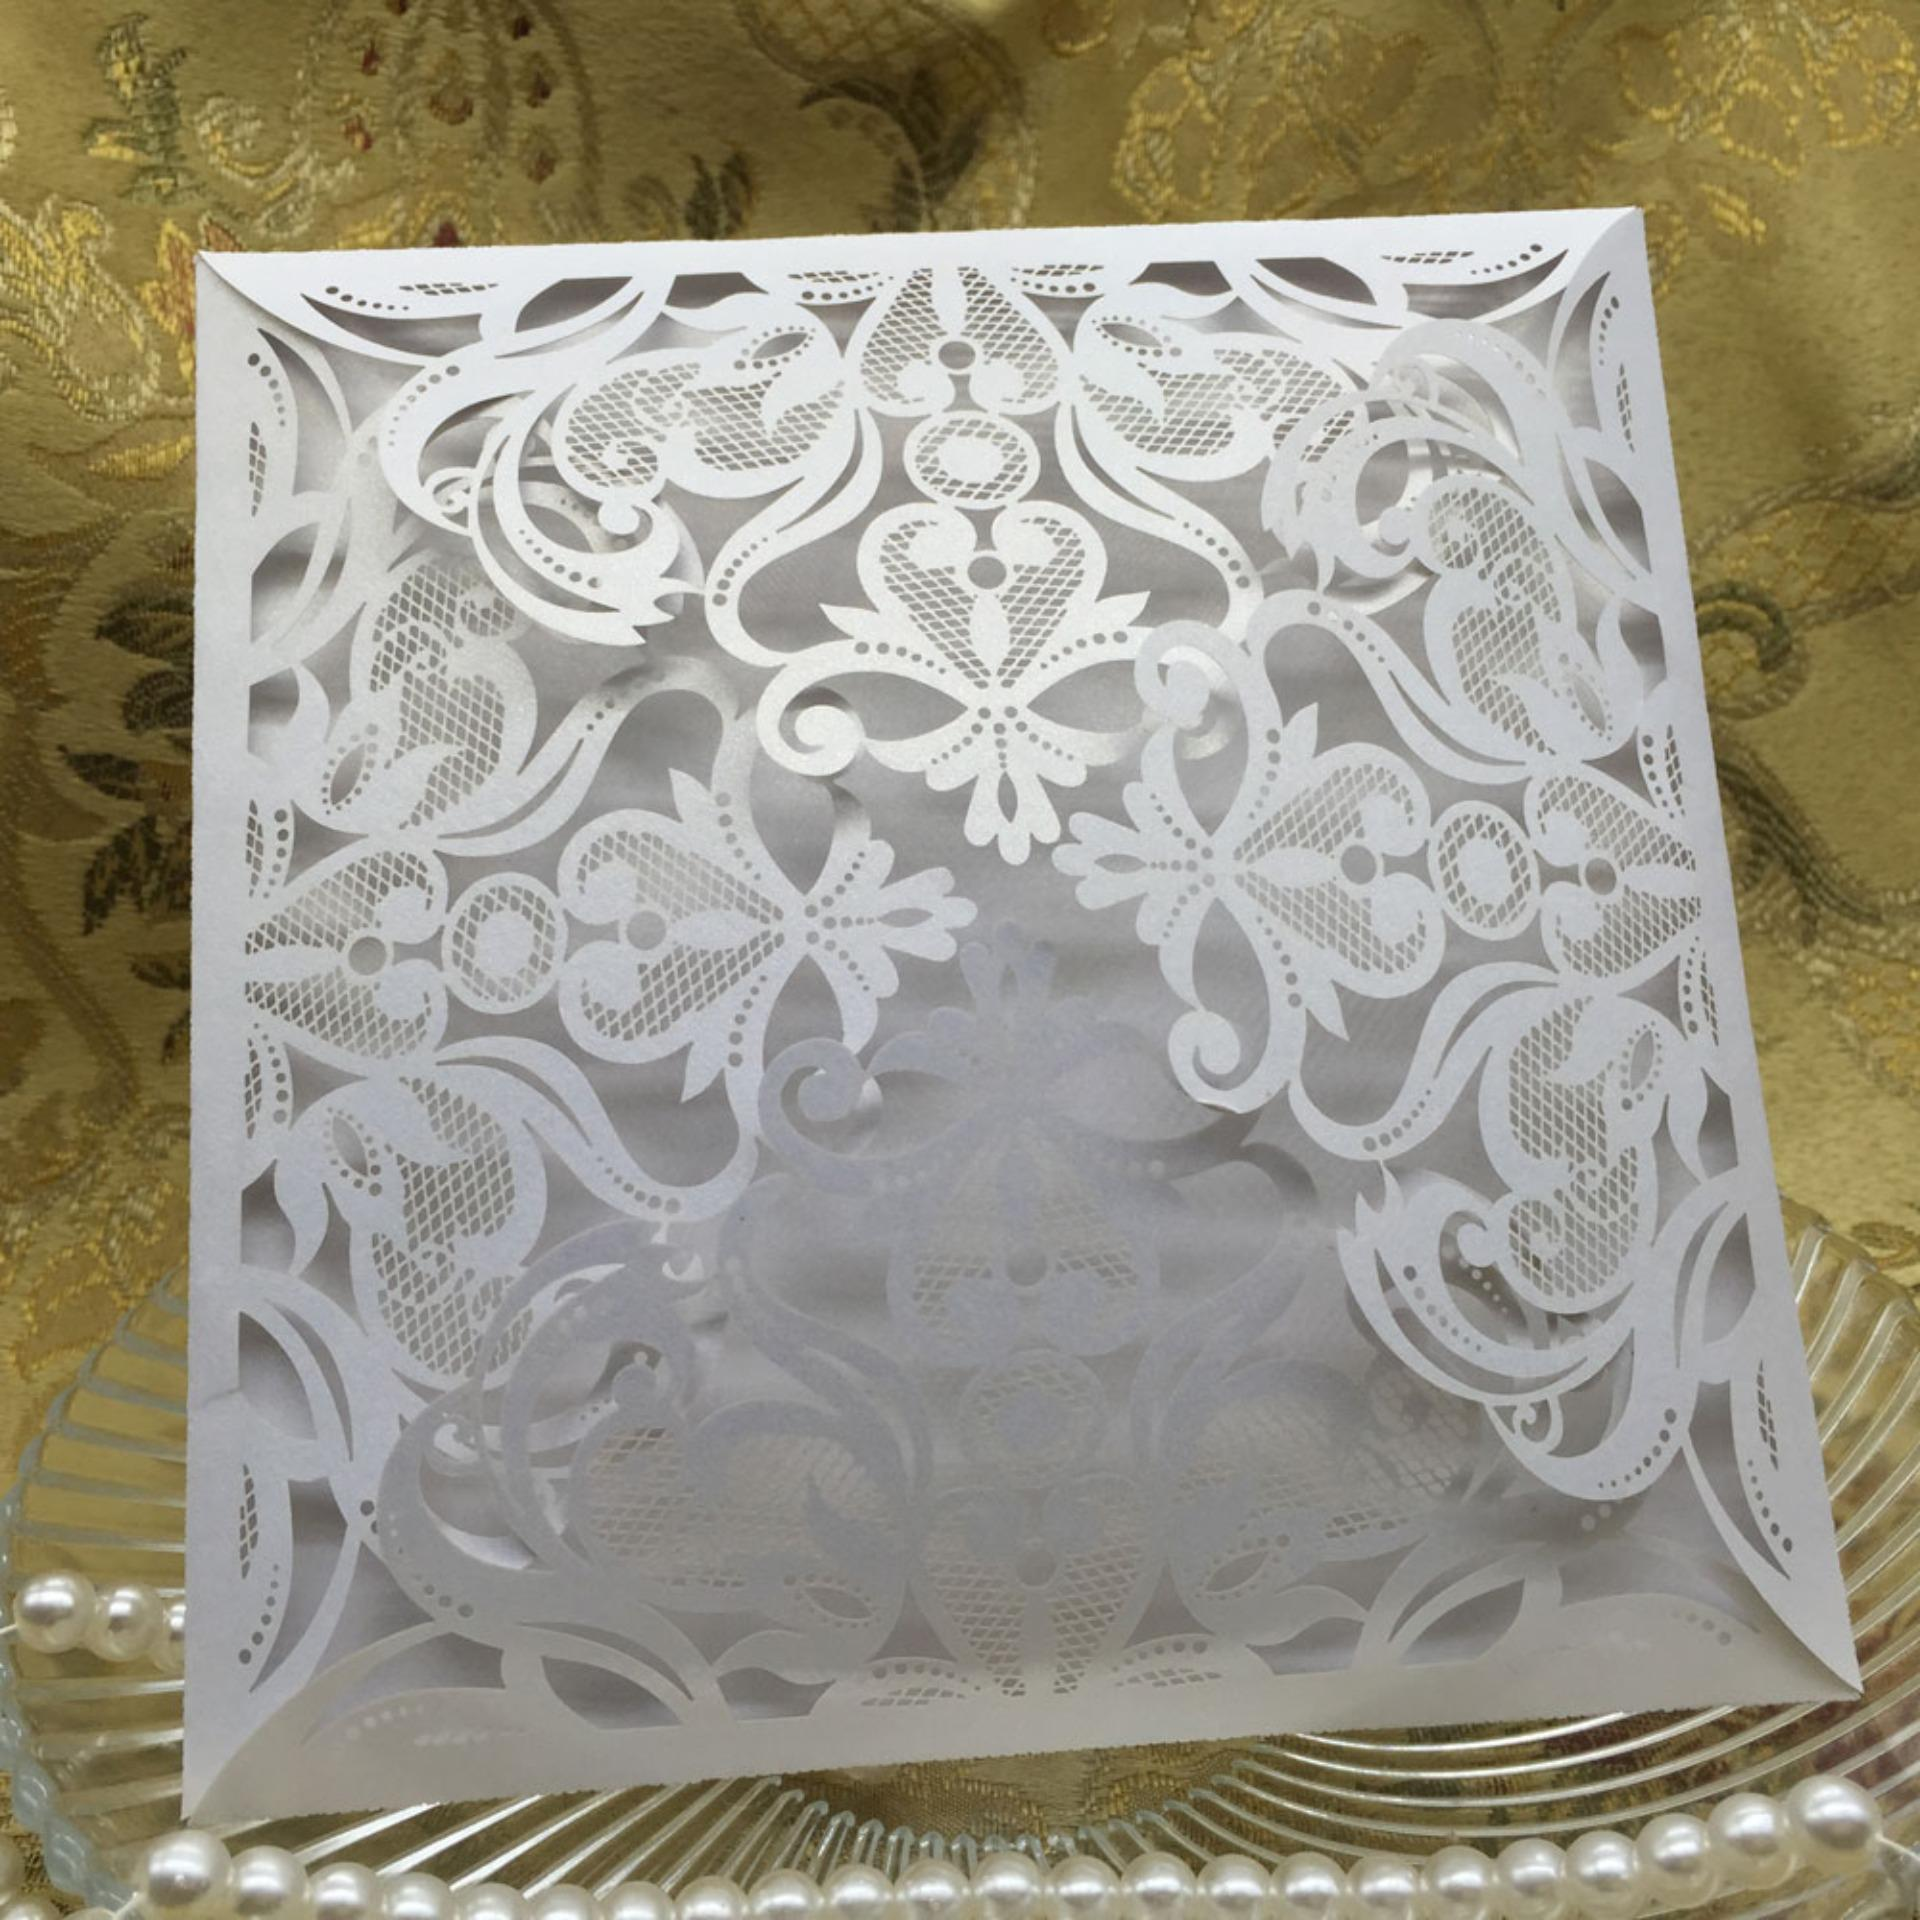 40pcs Set European Carved Pattern Wedding Invitation Card Hollow Out Crafts Cards For Party